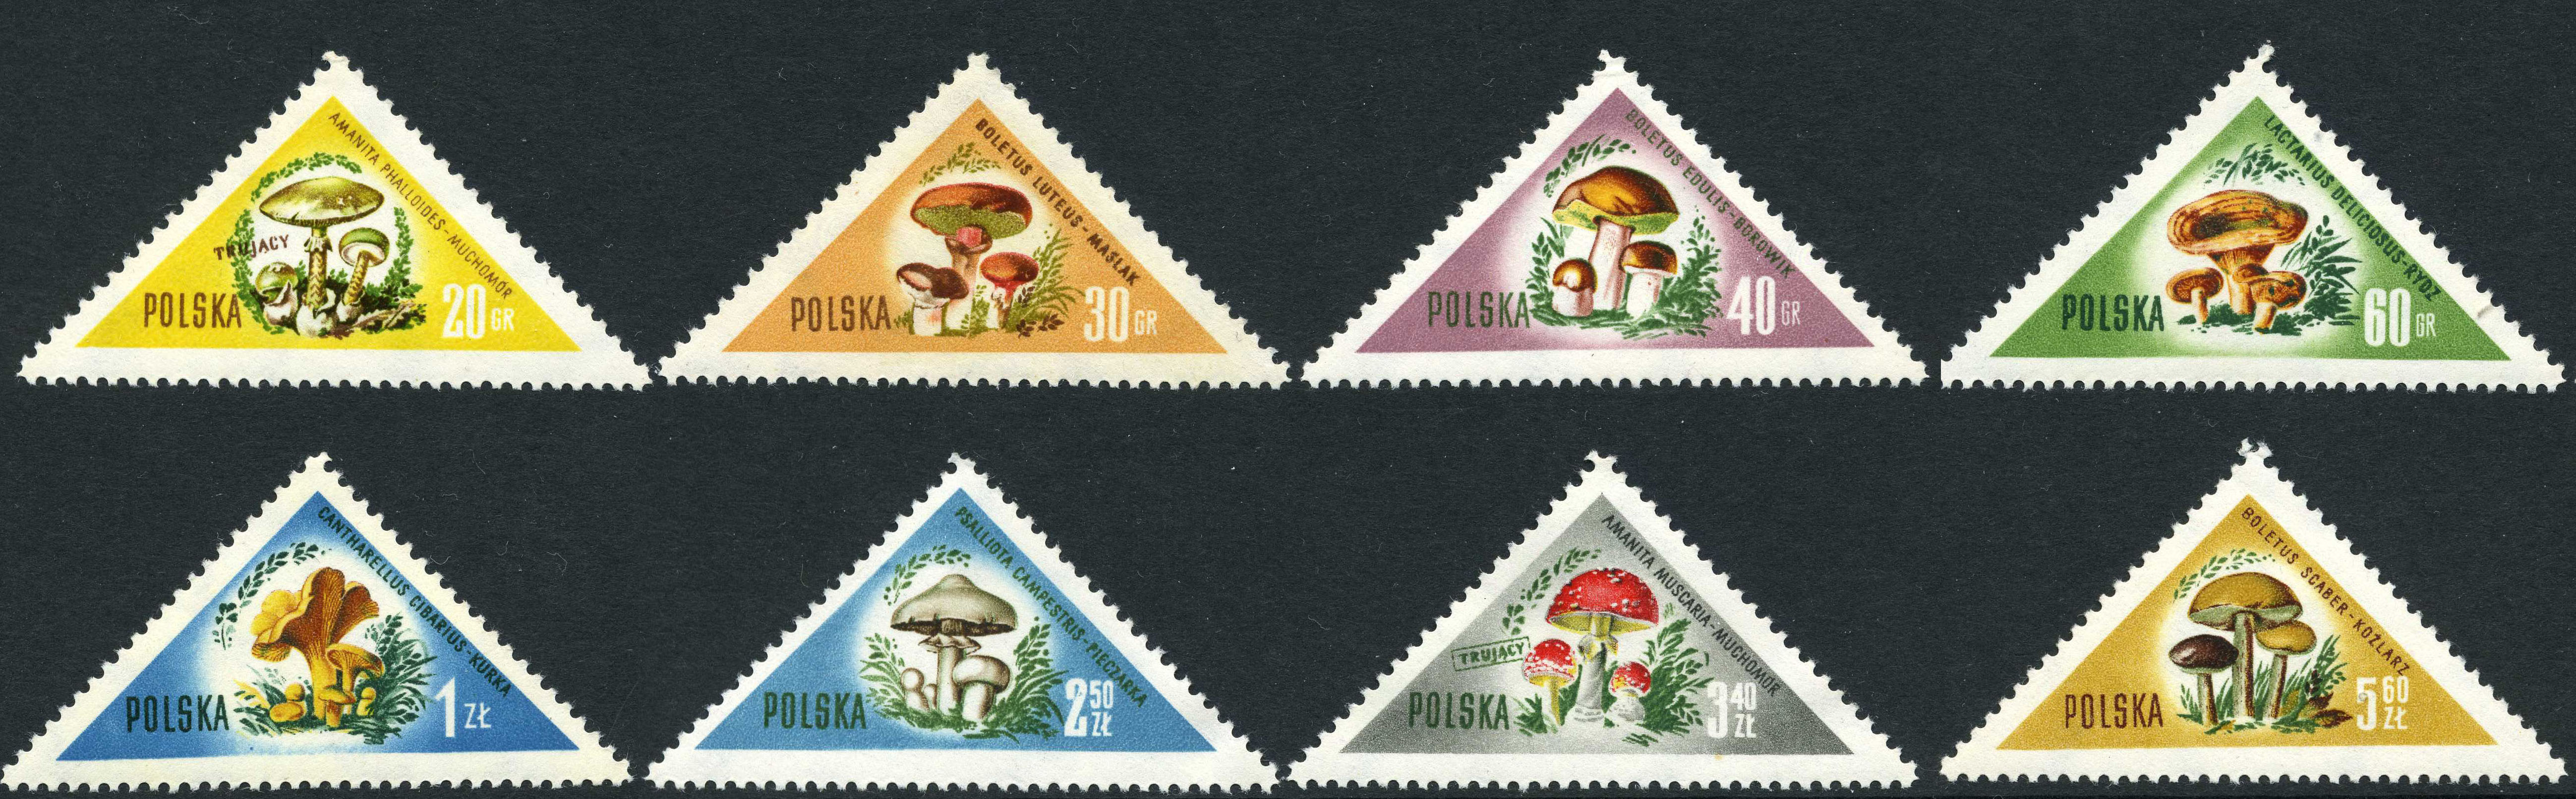 postage stamp design - poland 1959 triangle stamps